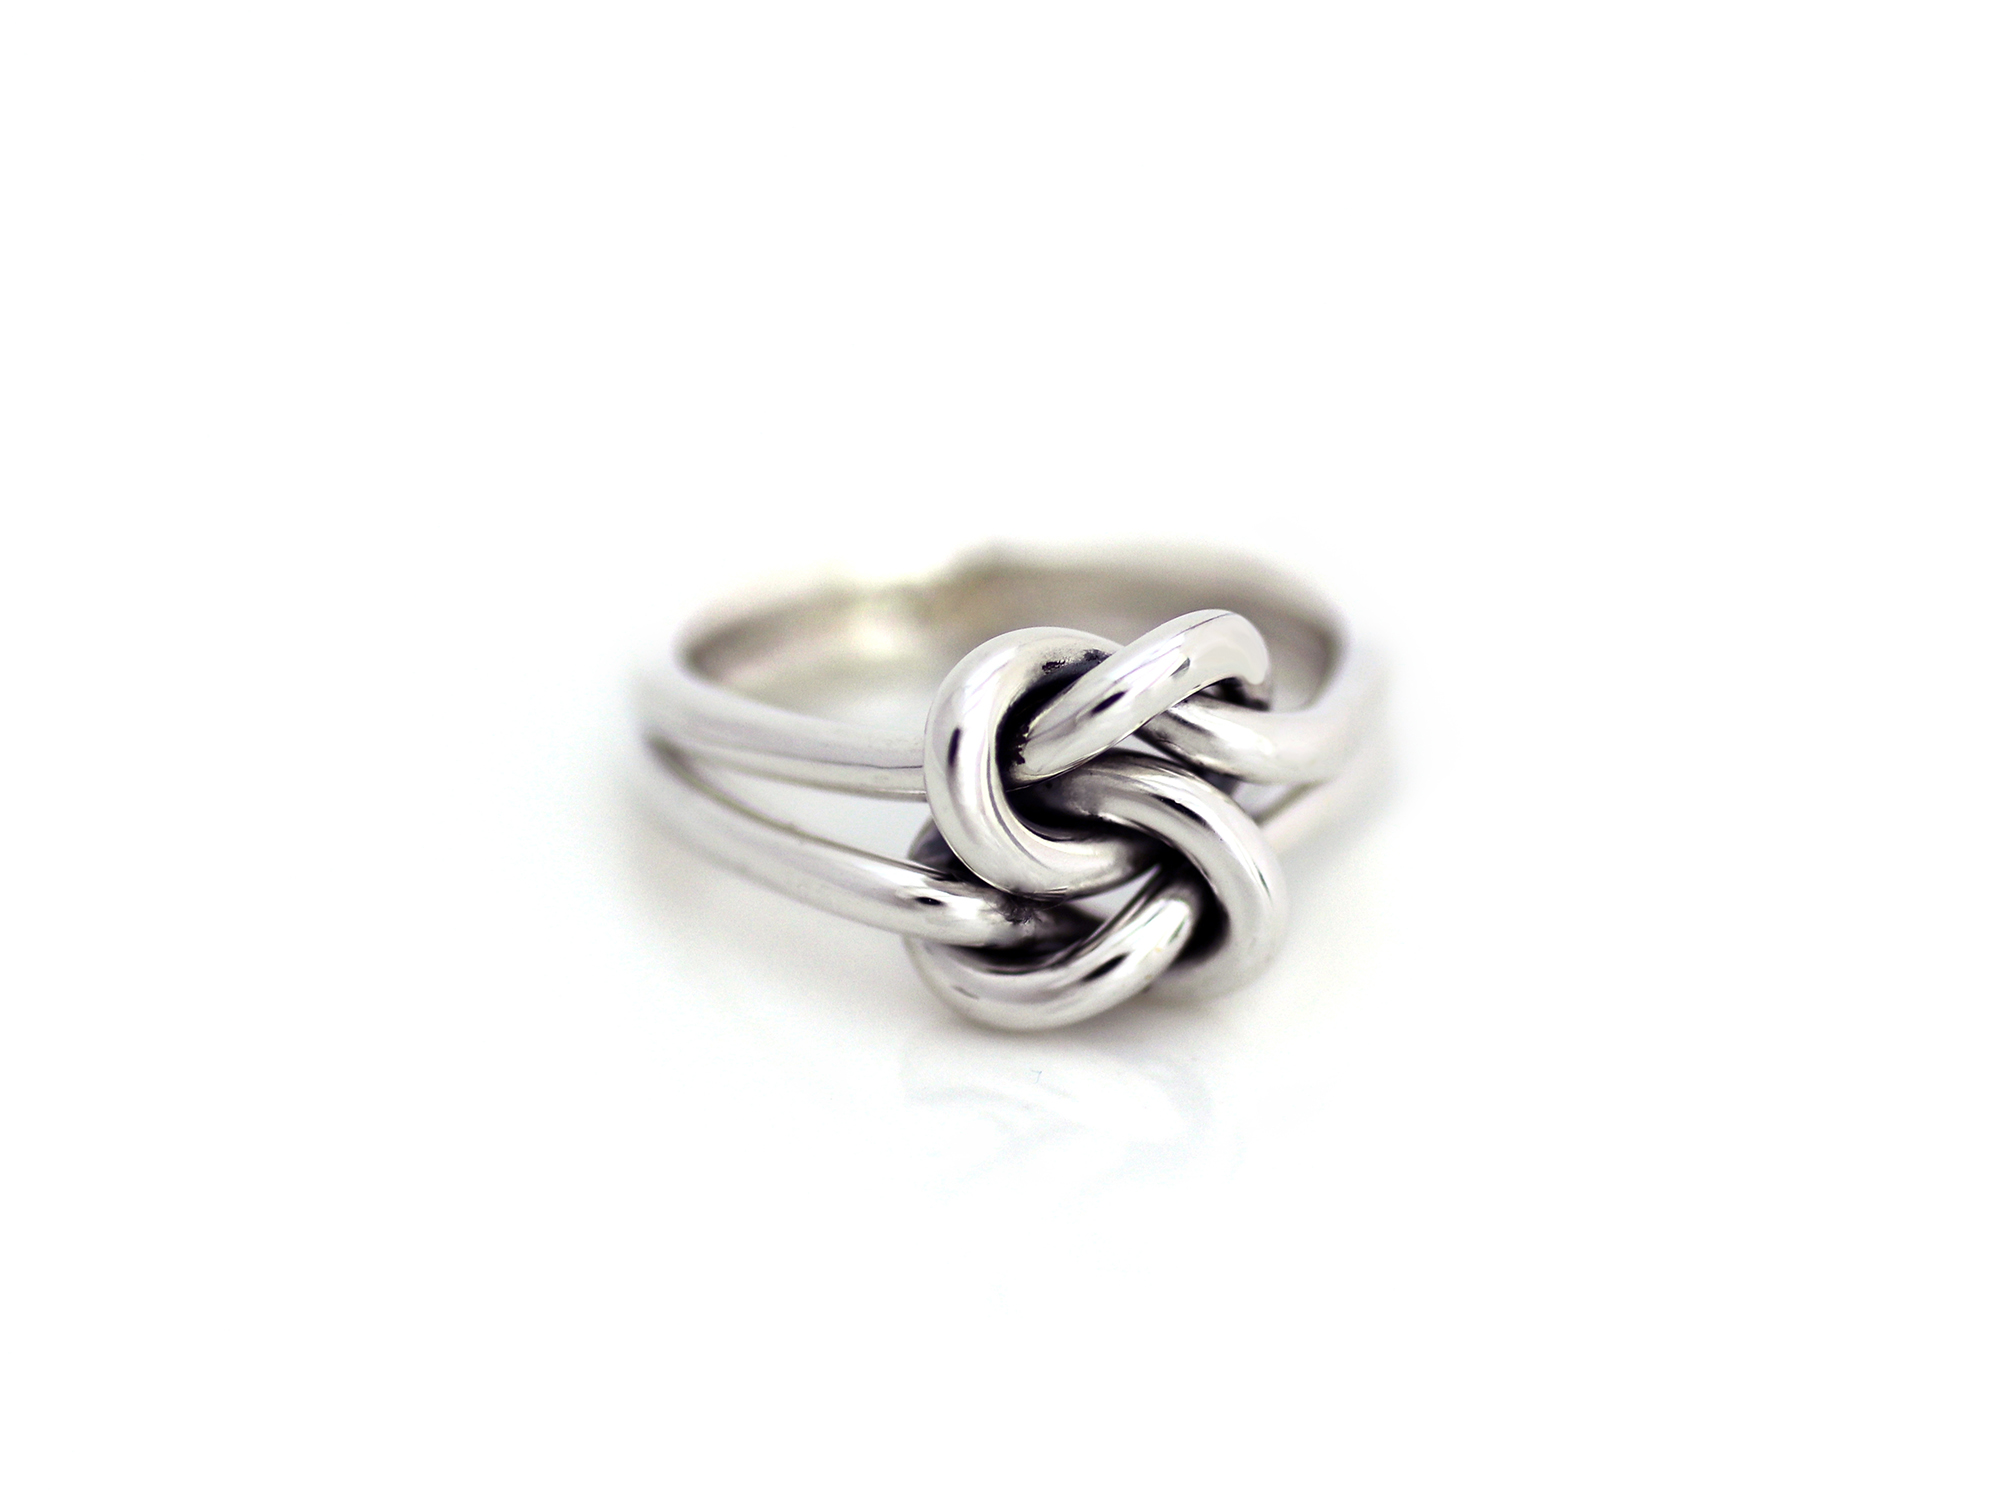 Double Band Double Love Knot Ring 925 Sterling Silver Trendy Fashion Jewelry